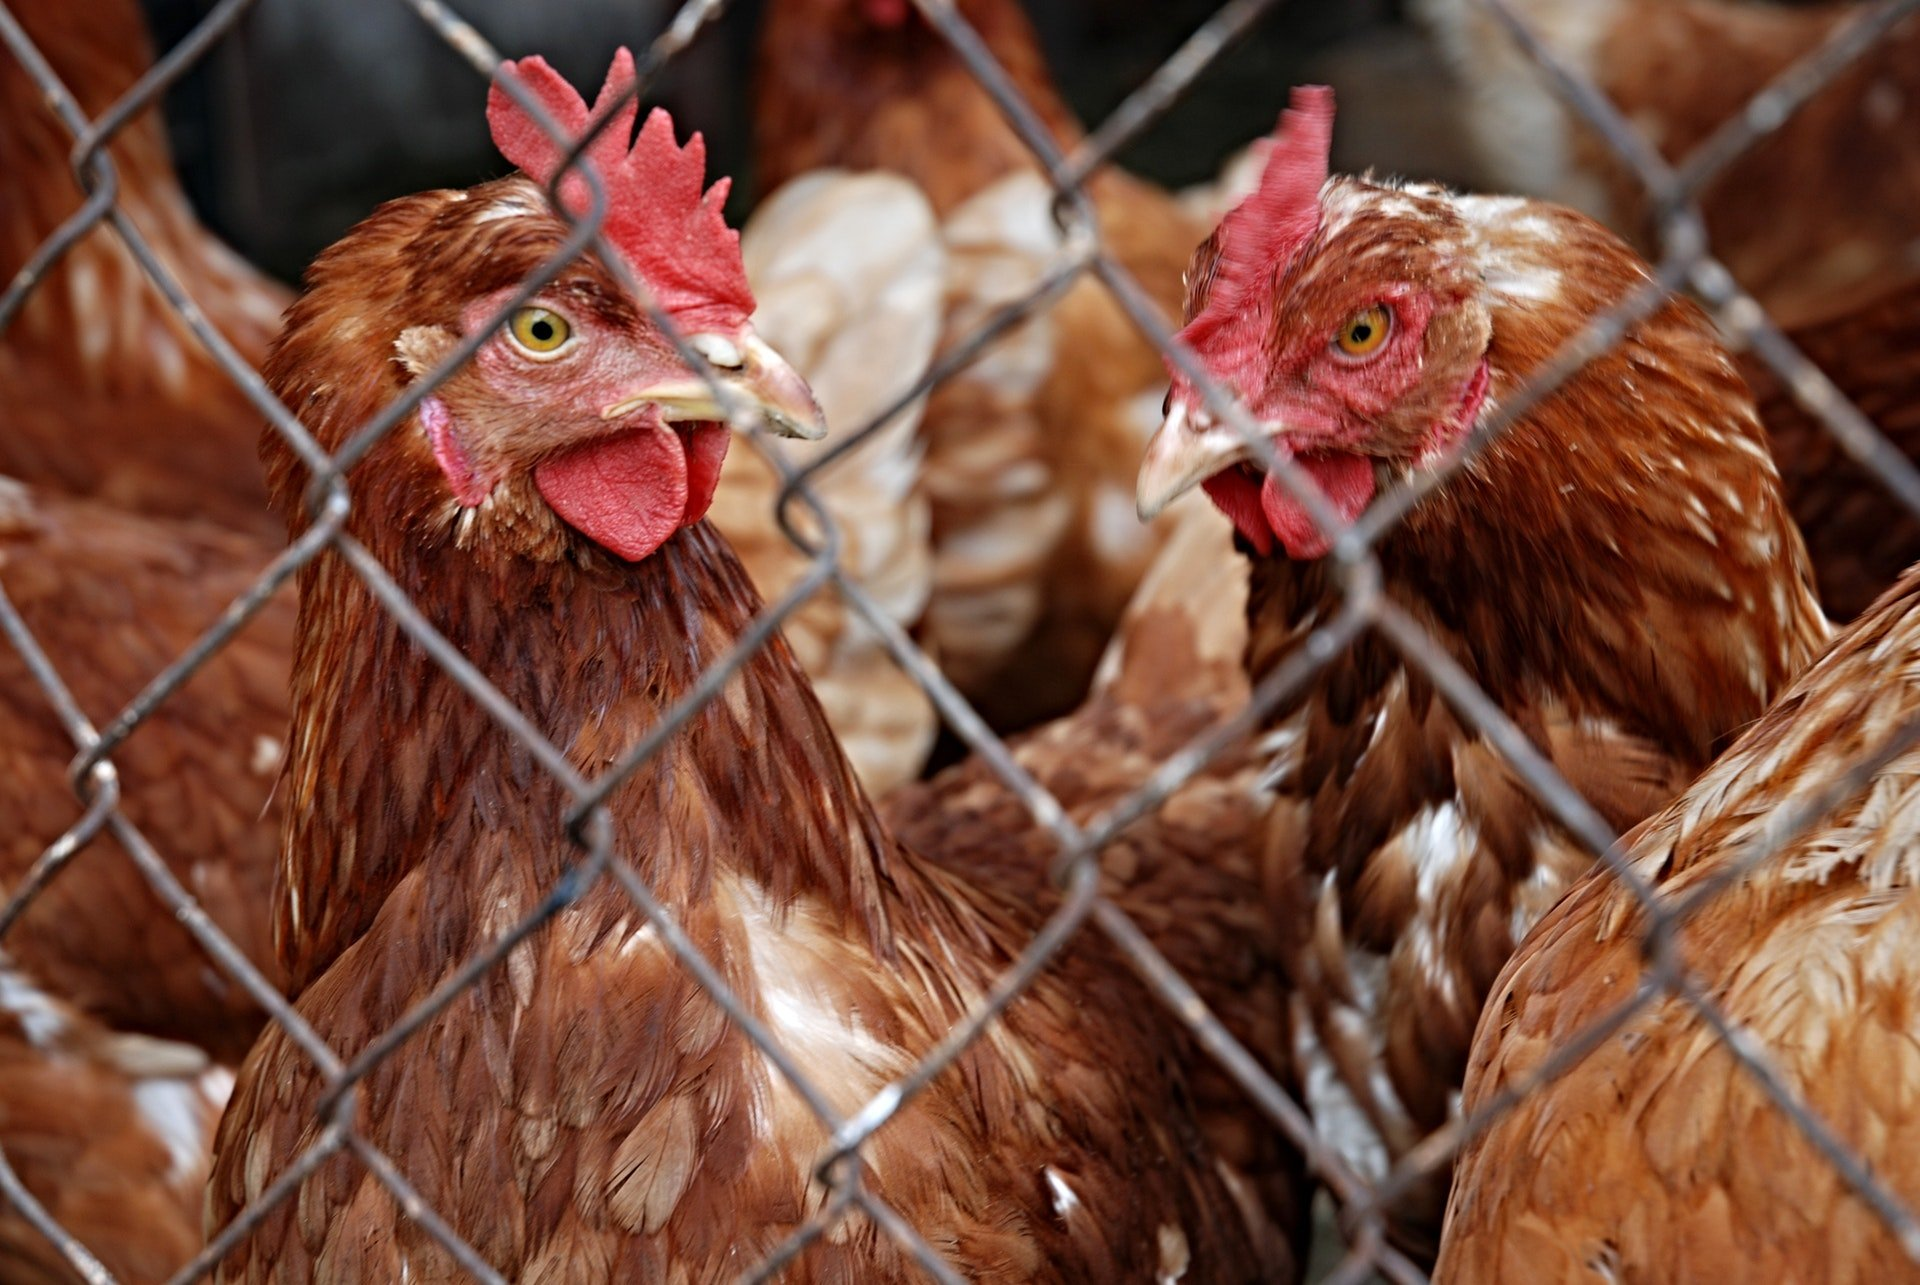 Analysing chicken genetics could help identify which strains are more responsive to a particular microbe. Image credit - Pexels, licensed under the pexels licence